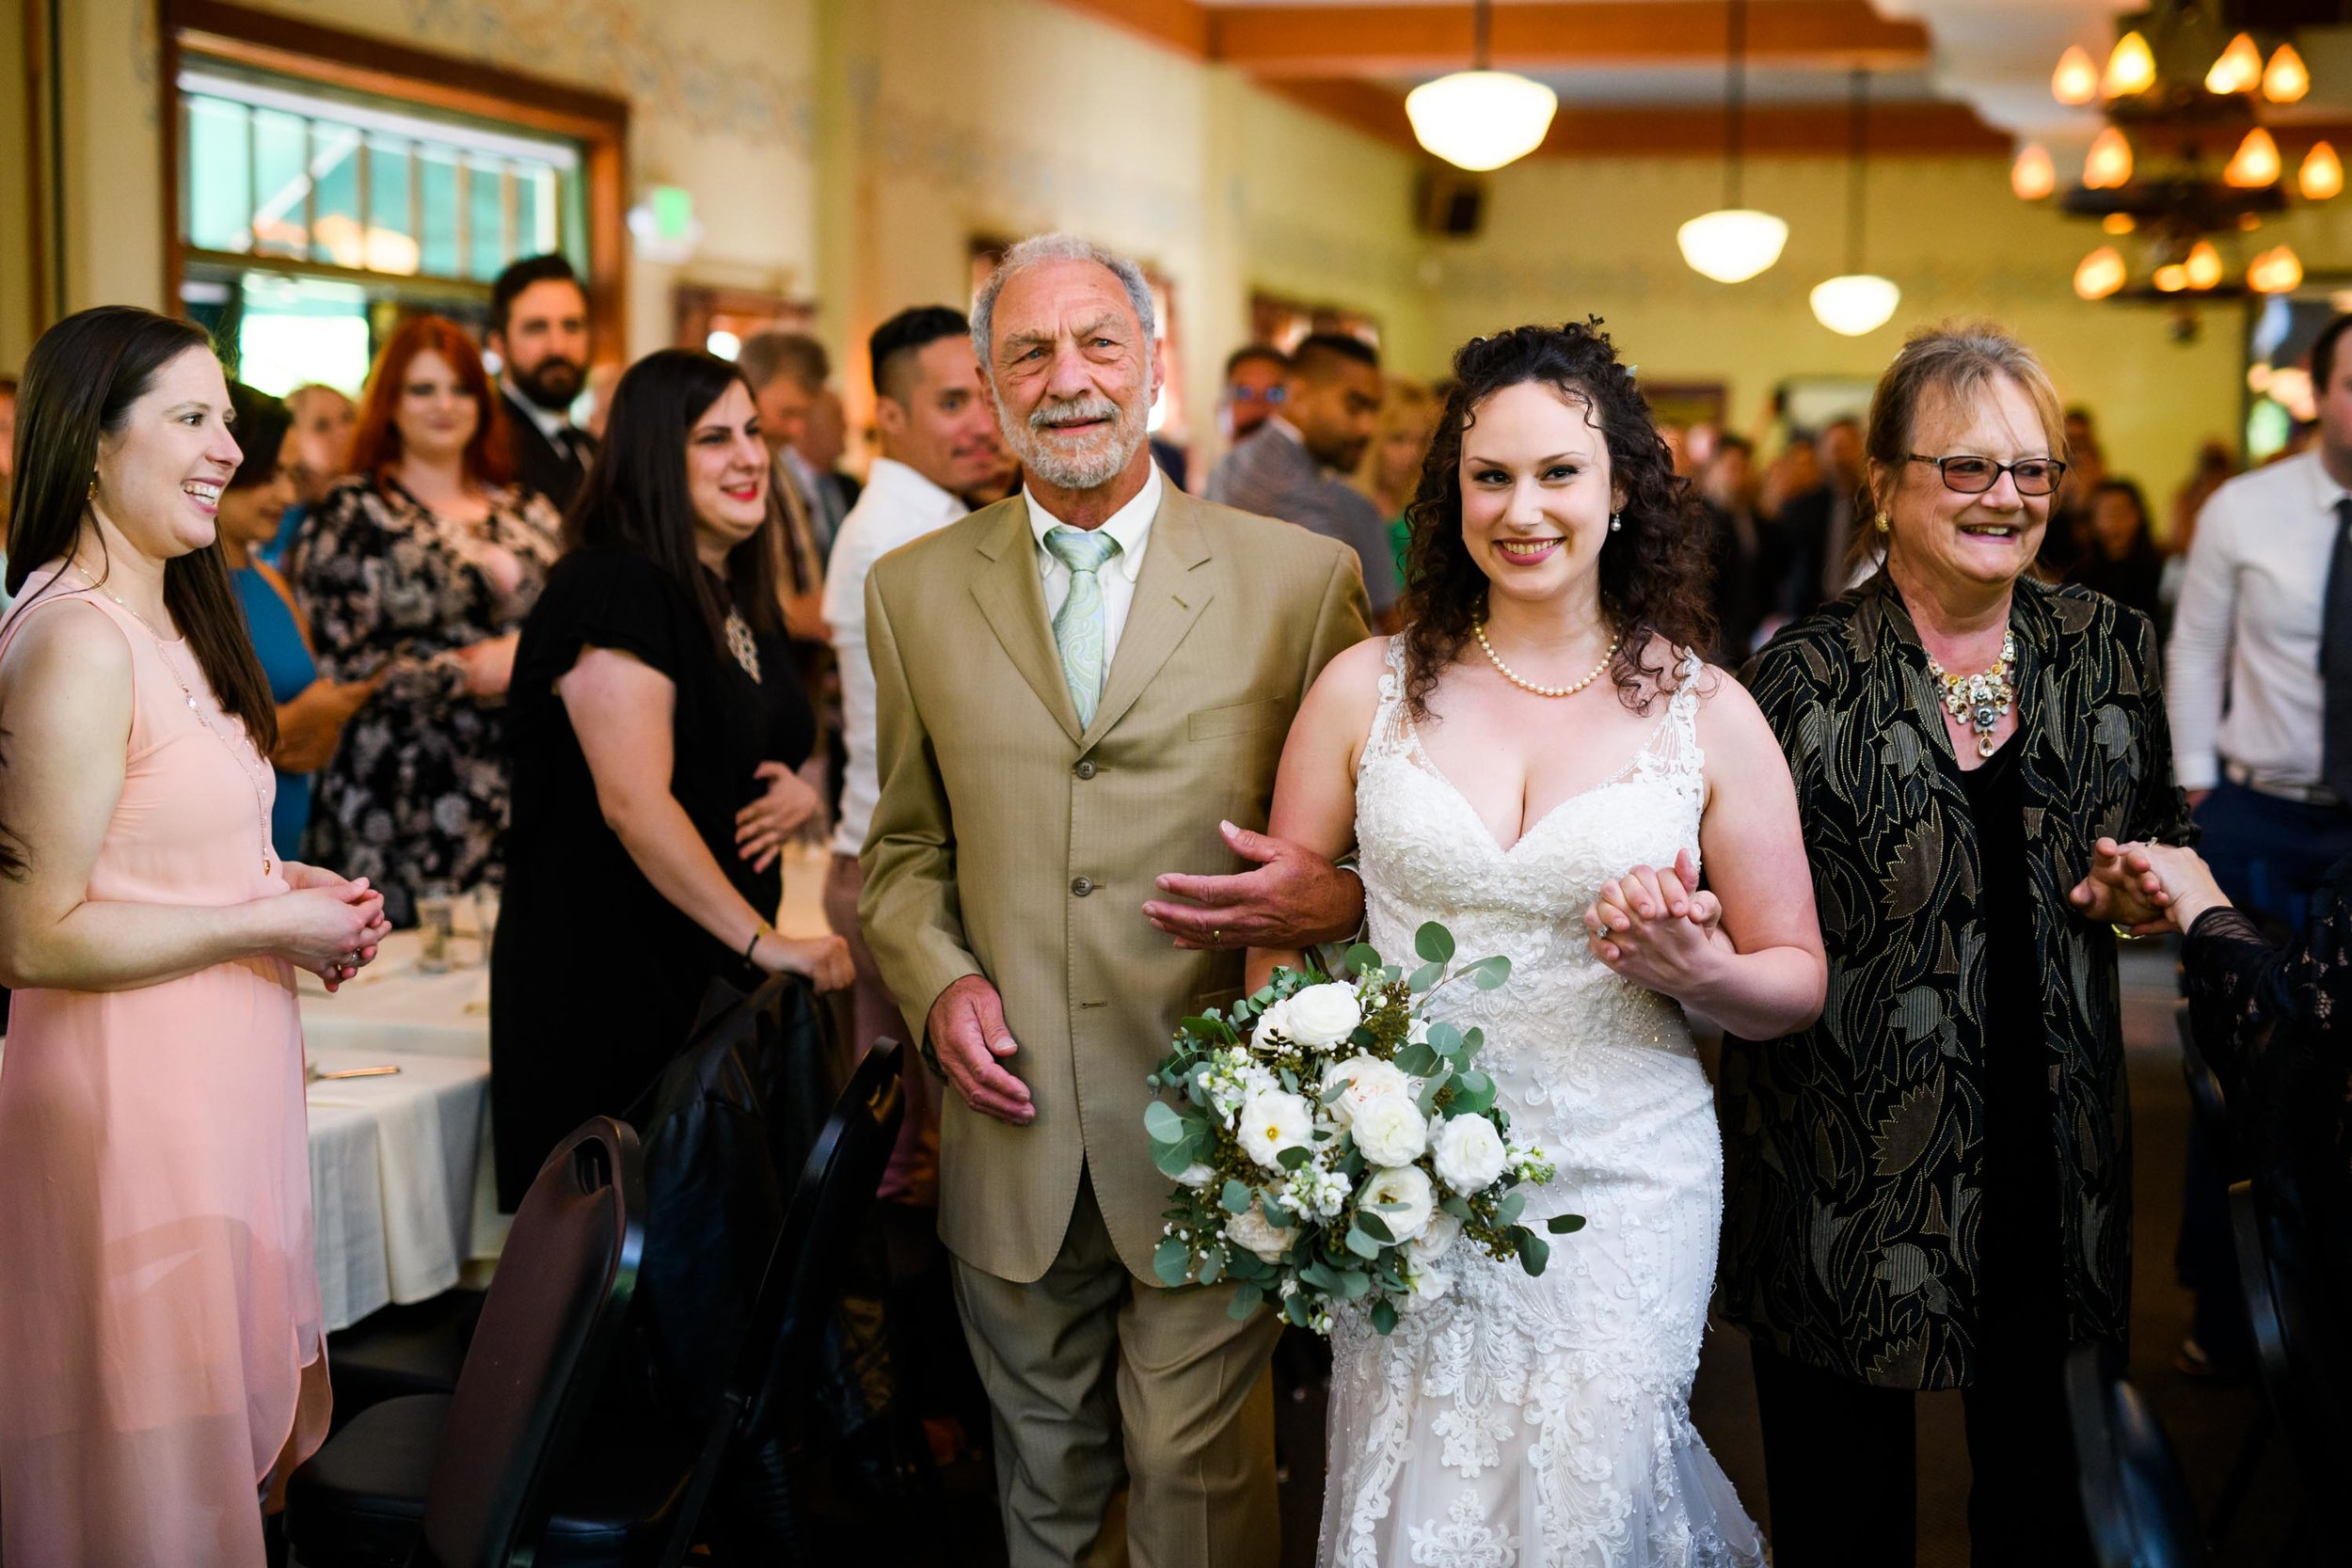 edgefield wedding photos49.jpg